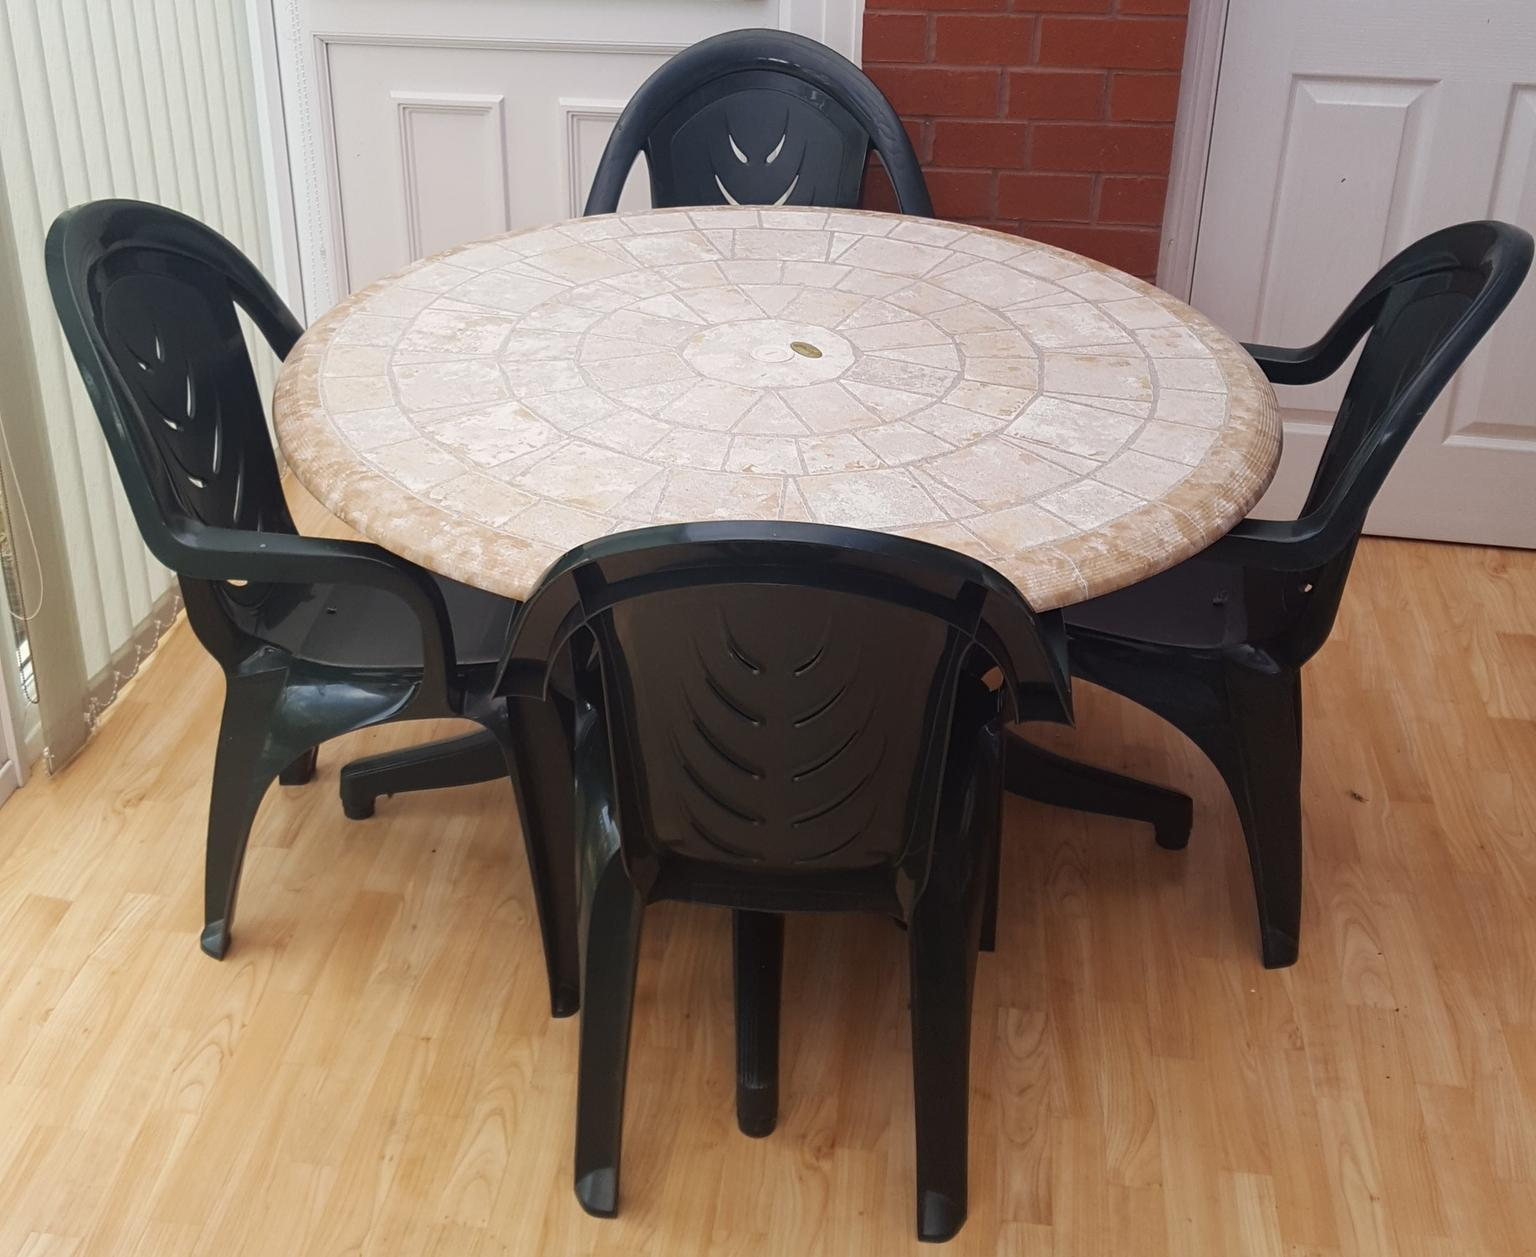 Spiksplinternieuw Hartman Prestige Conservatory/Patio table in M26 Lane for £200.00 AW-34